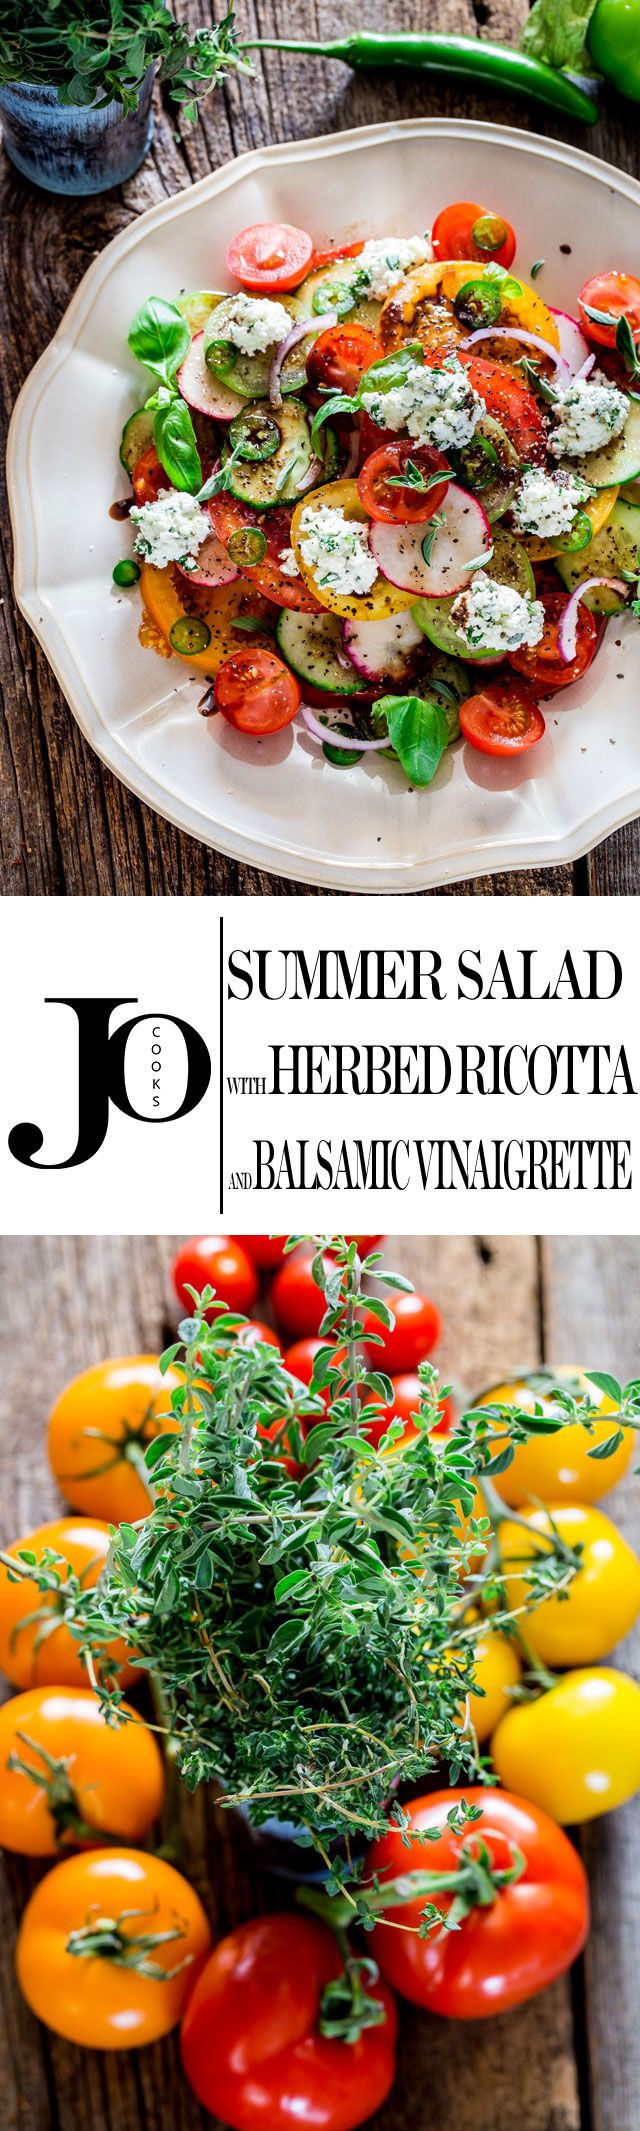 Summer Salad with Herbed Ricotta and Balsamic Vinaigrette - a simple salad with gorgeous heirloom tomatoes, cucumbers and radishes and drizzled with a simple balsamic vinaigrette and a dollop of herbed ricotta takes this salad over the top!